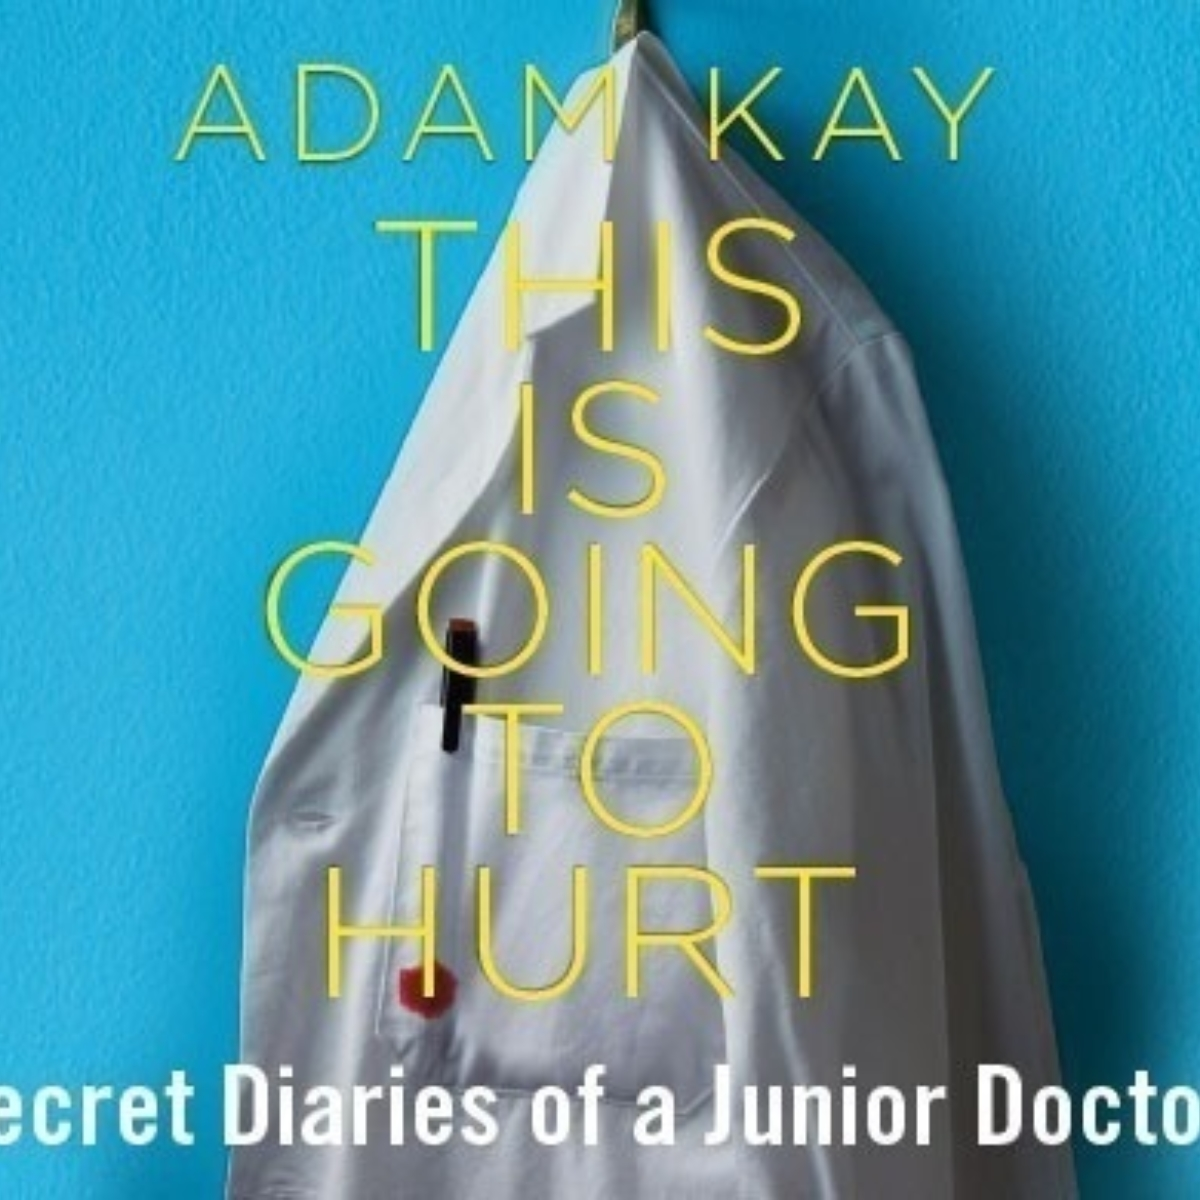 Adam Kay: This Is Going To Hurt - Garrick Theatre Images